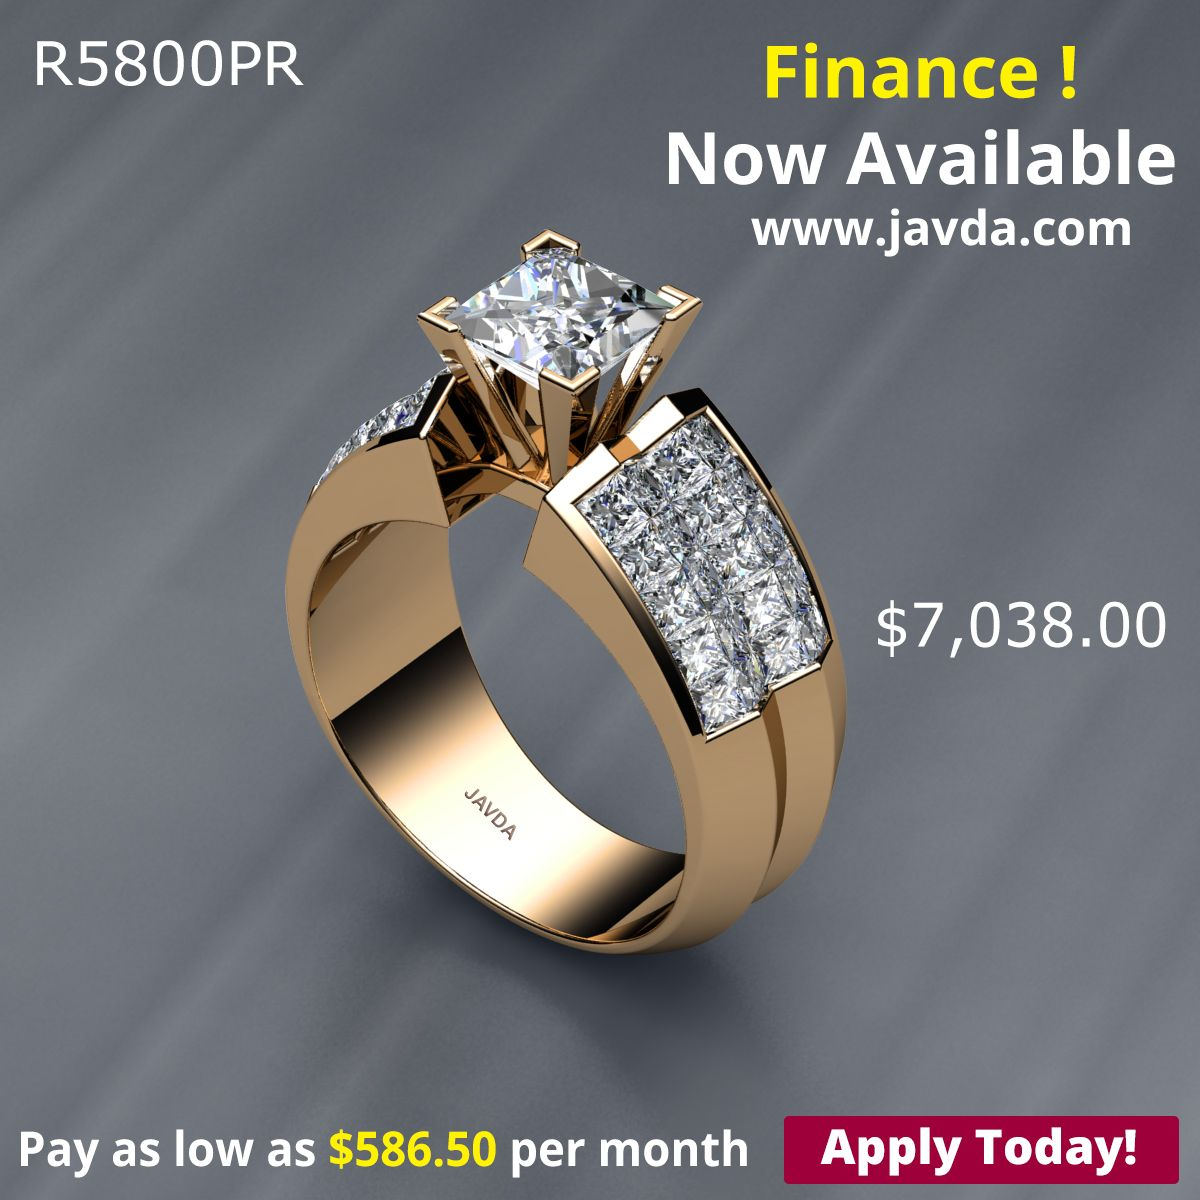 Princess Diamond Engagement Invisible Set Ring Certified By Gia I Color Si2 Clarity 14k Yellow Gold 2 92 Ct Total Weight